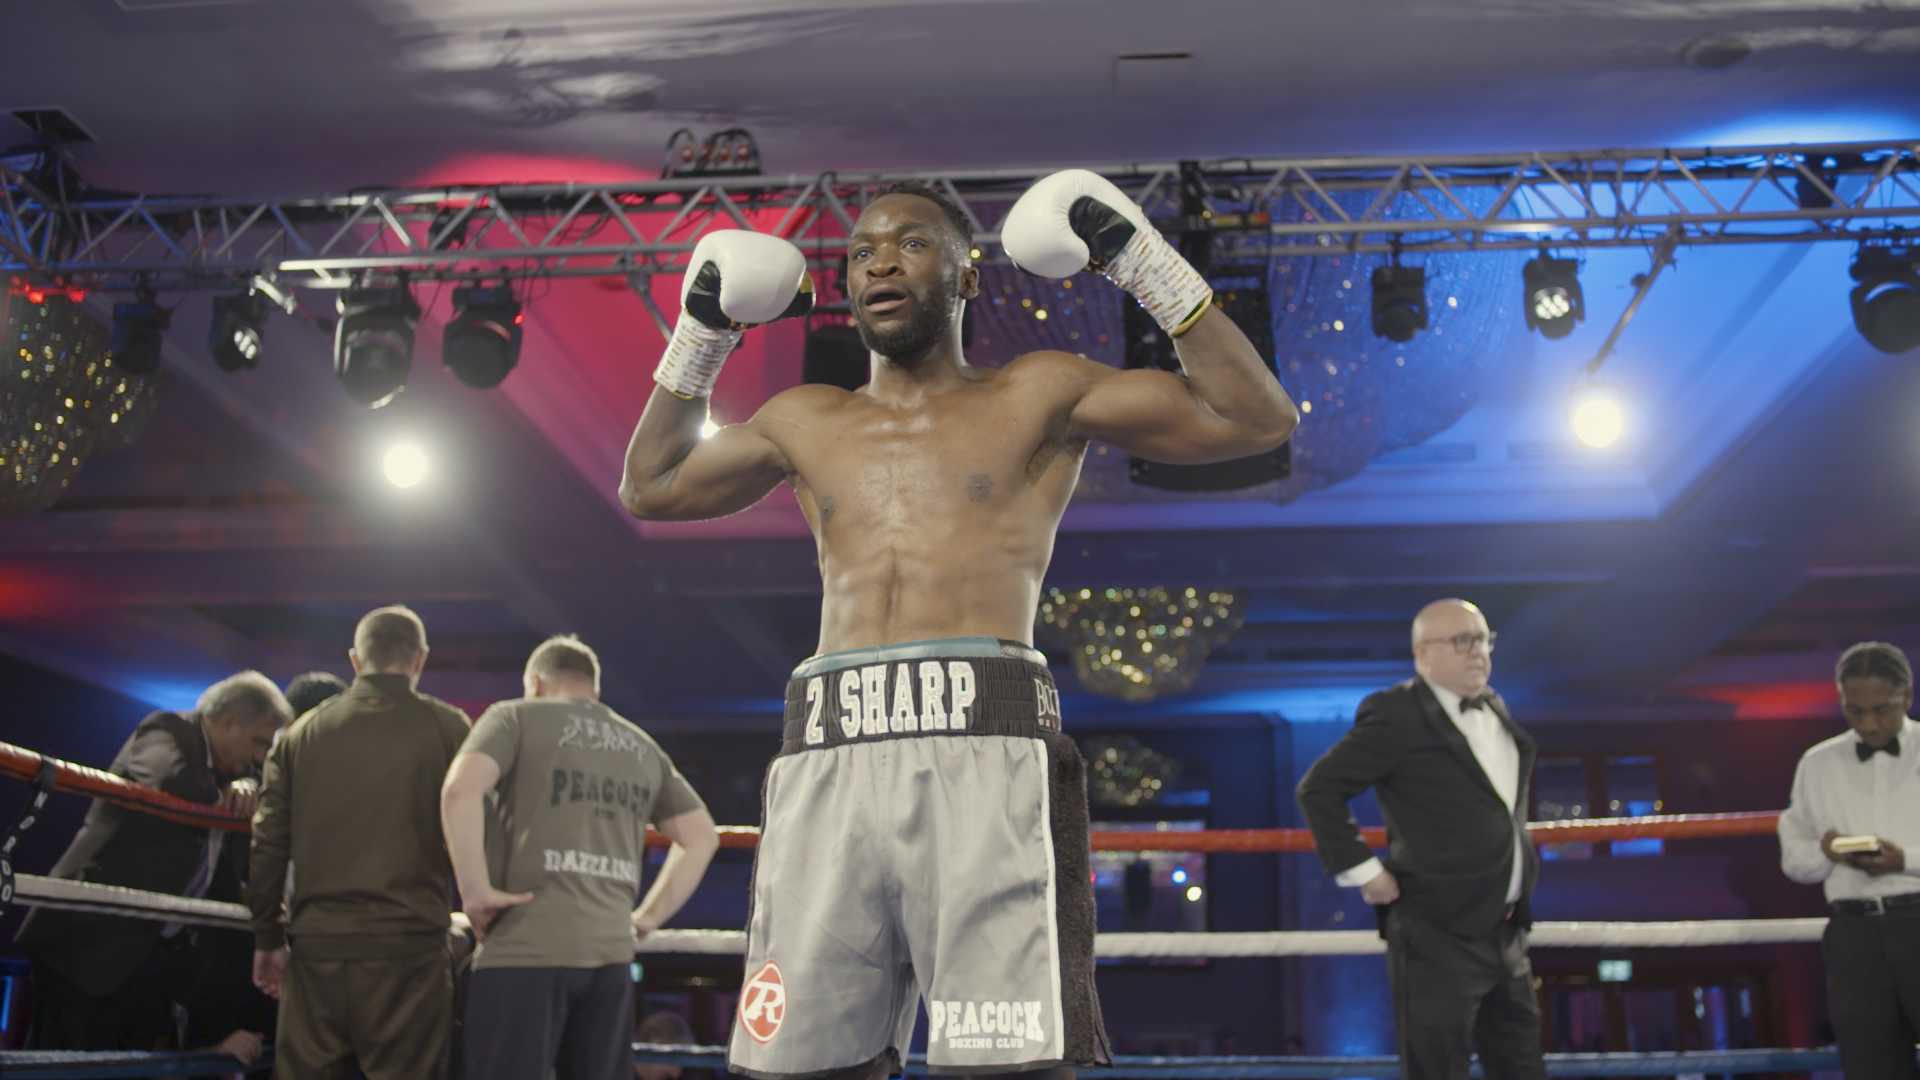 NORDOFF ROBINS CHARITY BOXING - A boxing event video shot, graded and edited by Tilly Harding-Kemp.Production Company: GH05T